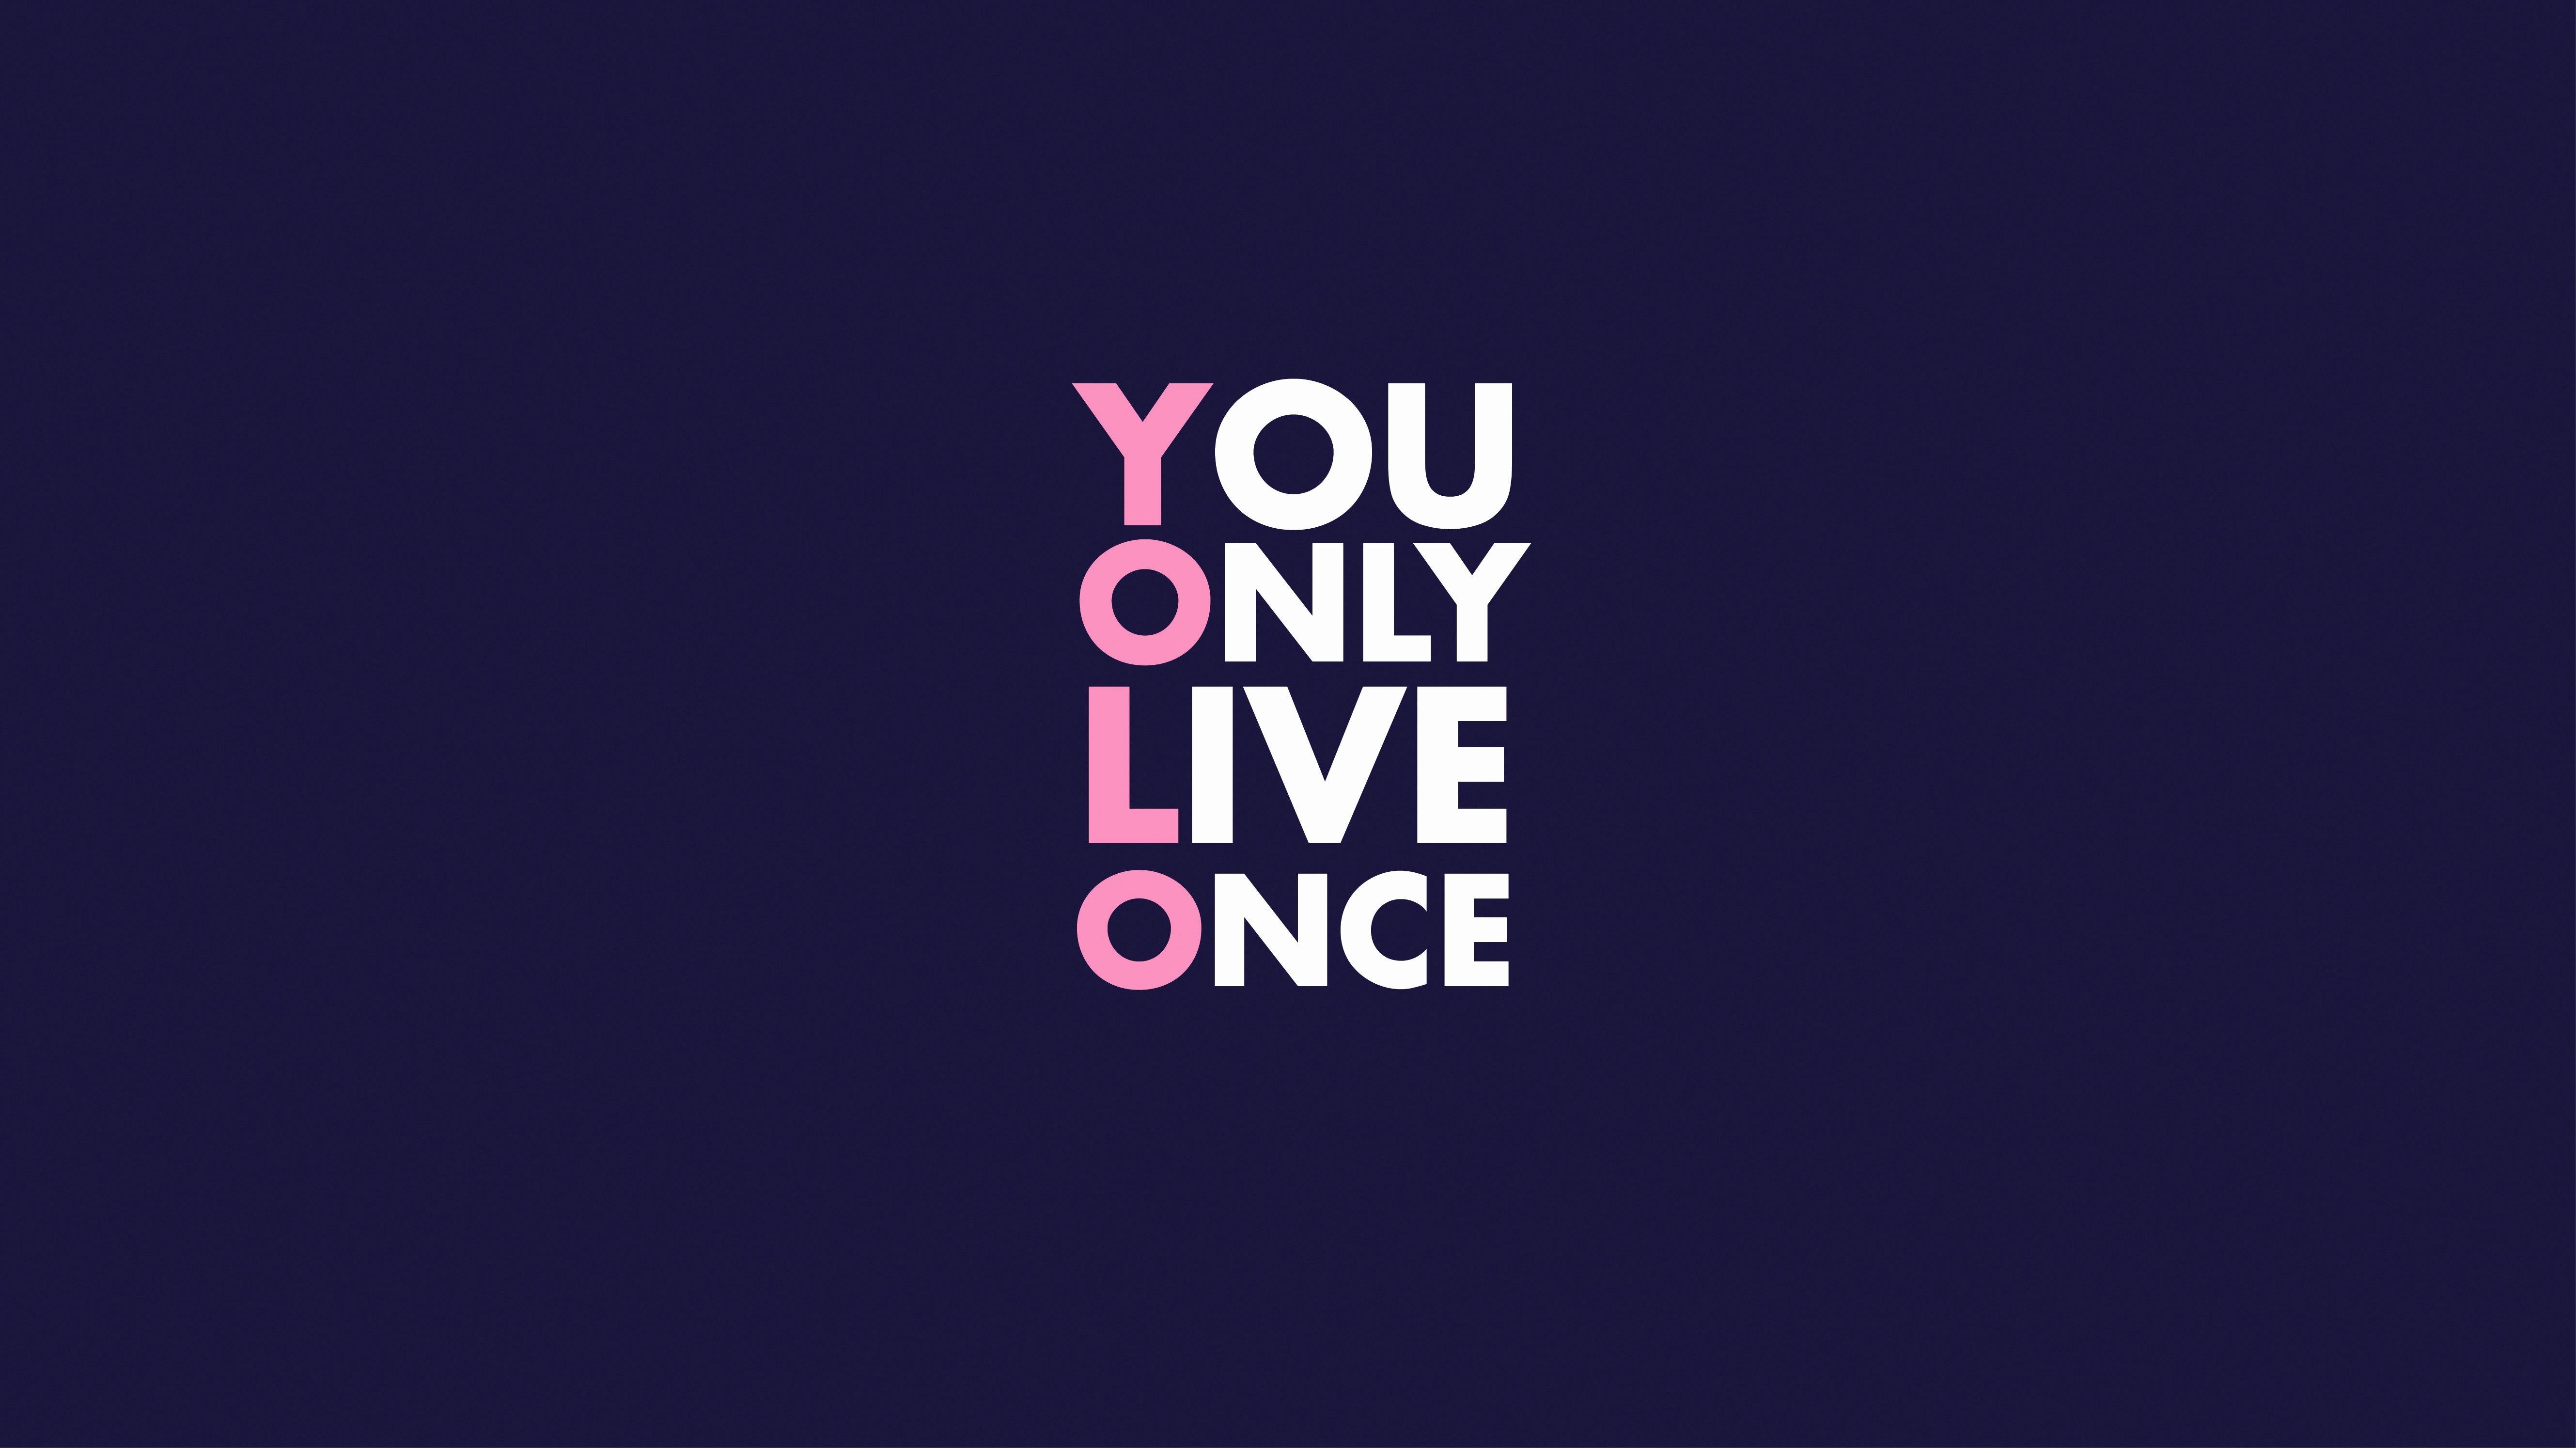 Yolo Swag Wallpapers HD - Wallpaper Cave